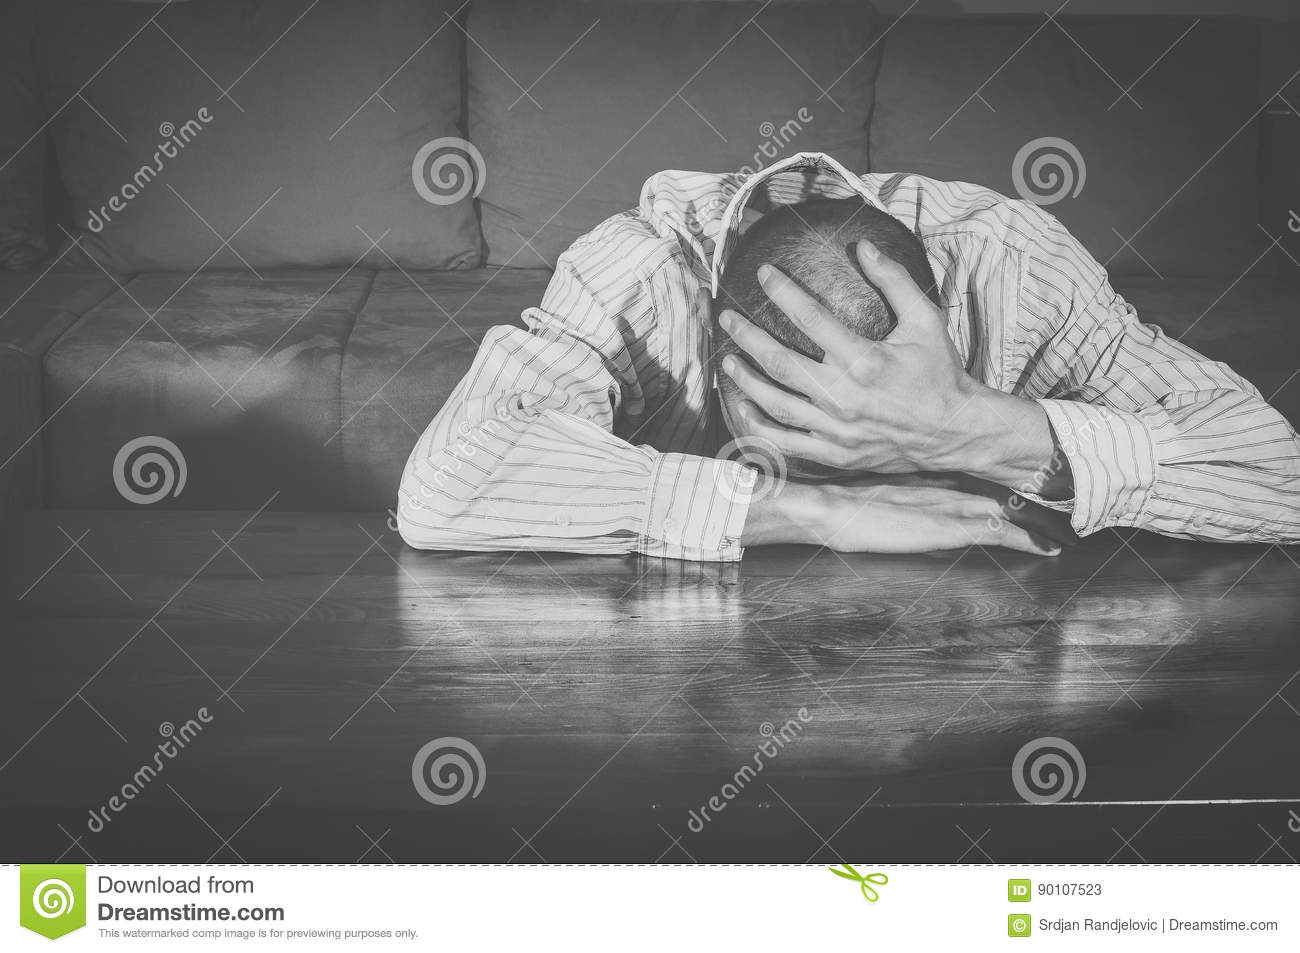 miserable-young-man-sitting-his-room-depression-black-white-loneliness-sadness-confusion-man-crying-sad-man-cry-90107523[1]